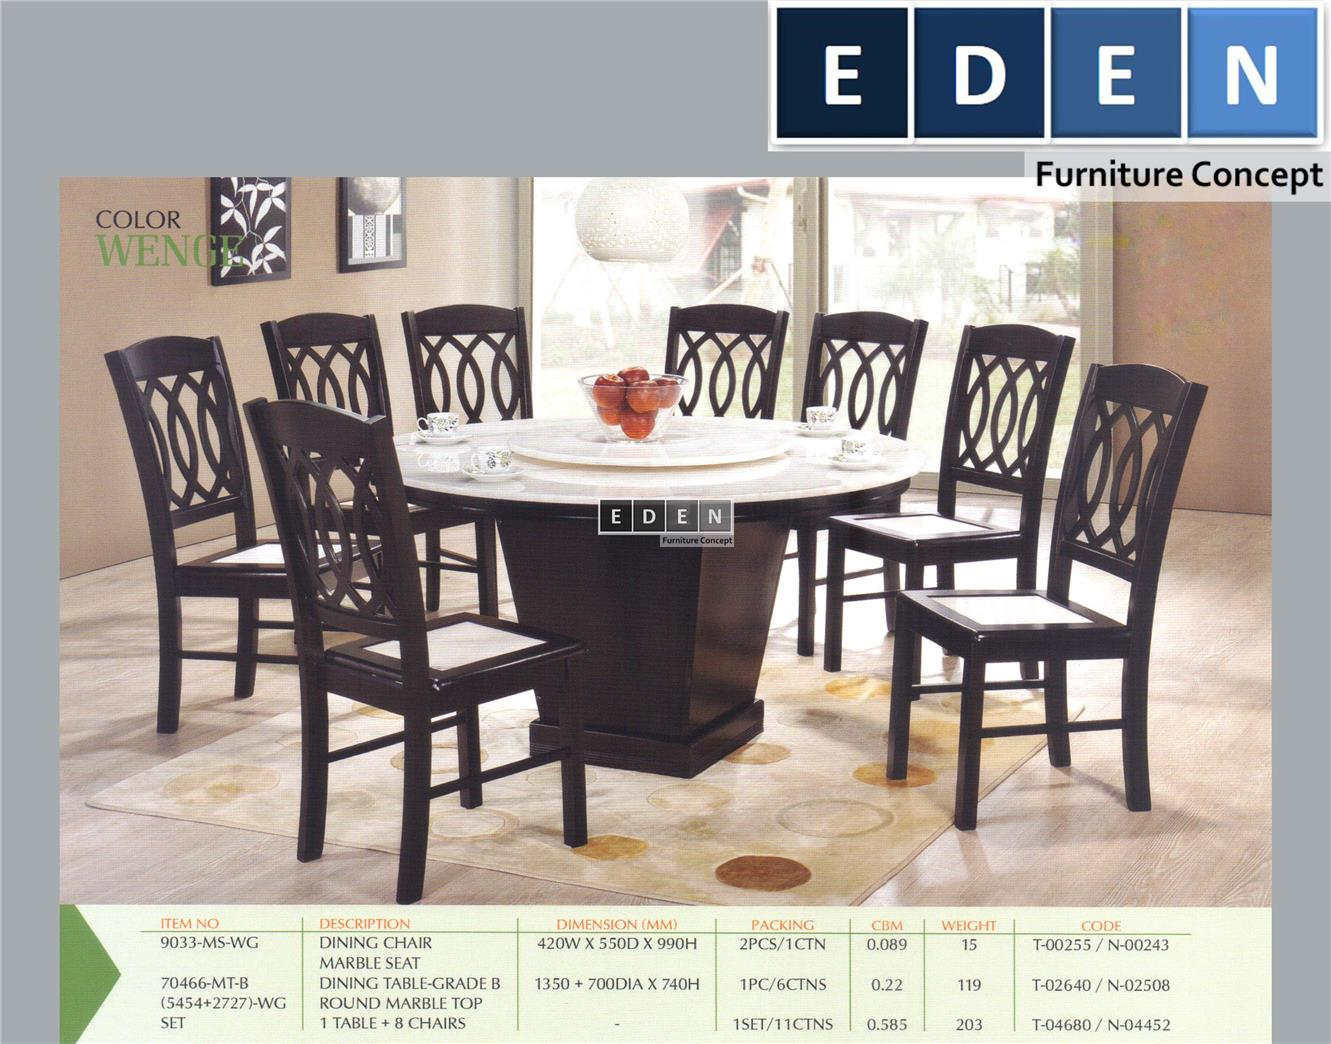 FURNITURE MALAYSIA KITCHEN DINING end 632017 1015 AM : furniture malaysia kitchen dining table set meja makan set 70466s kykstore 1506 04 KYKstore3 from www.lelong.com.my size 1331 x 1044 jpeg 183kB